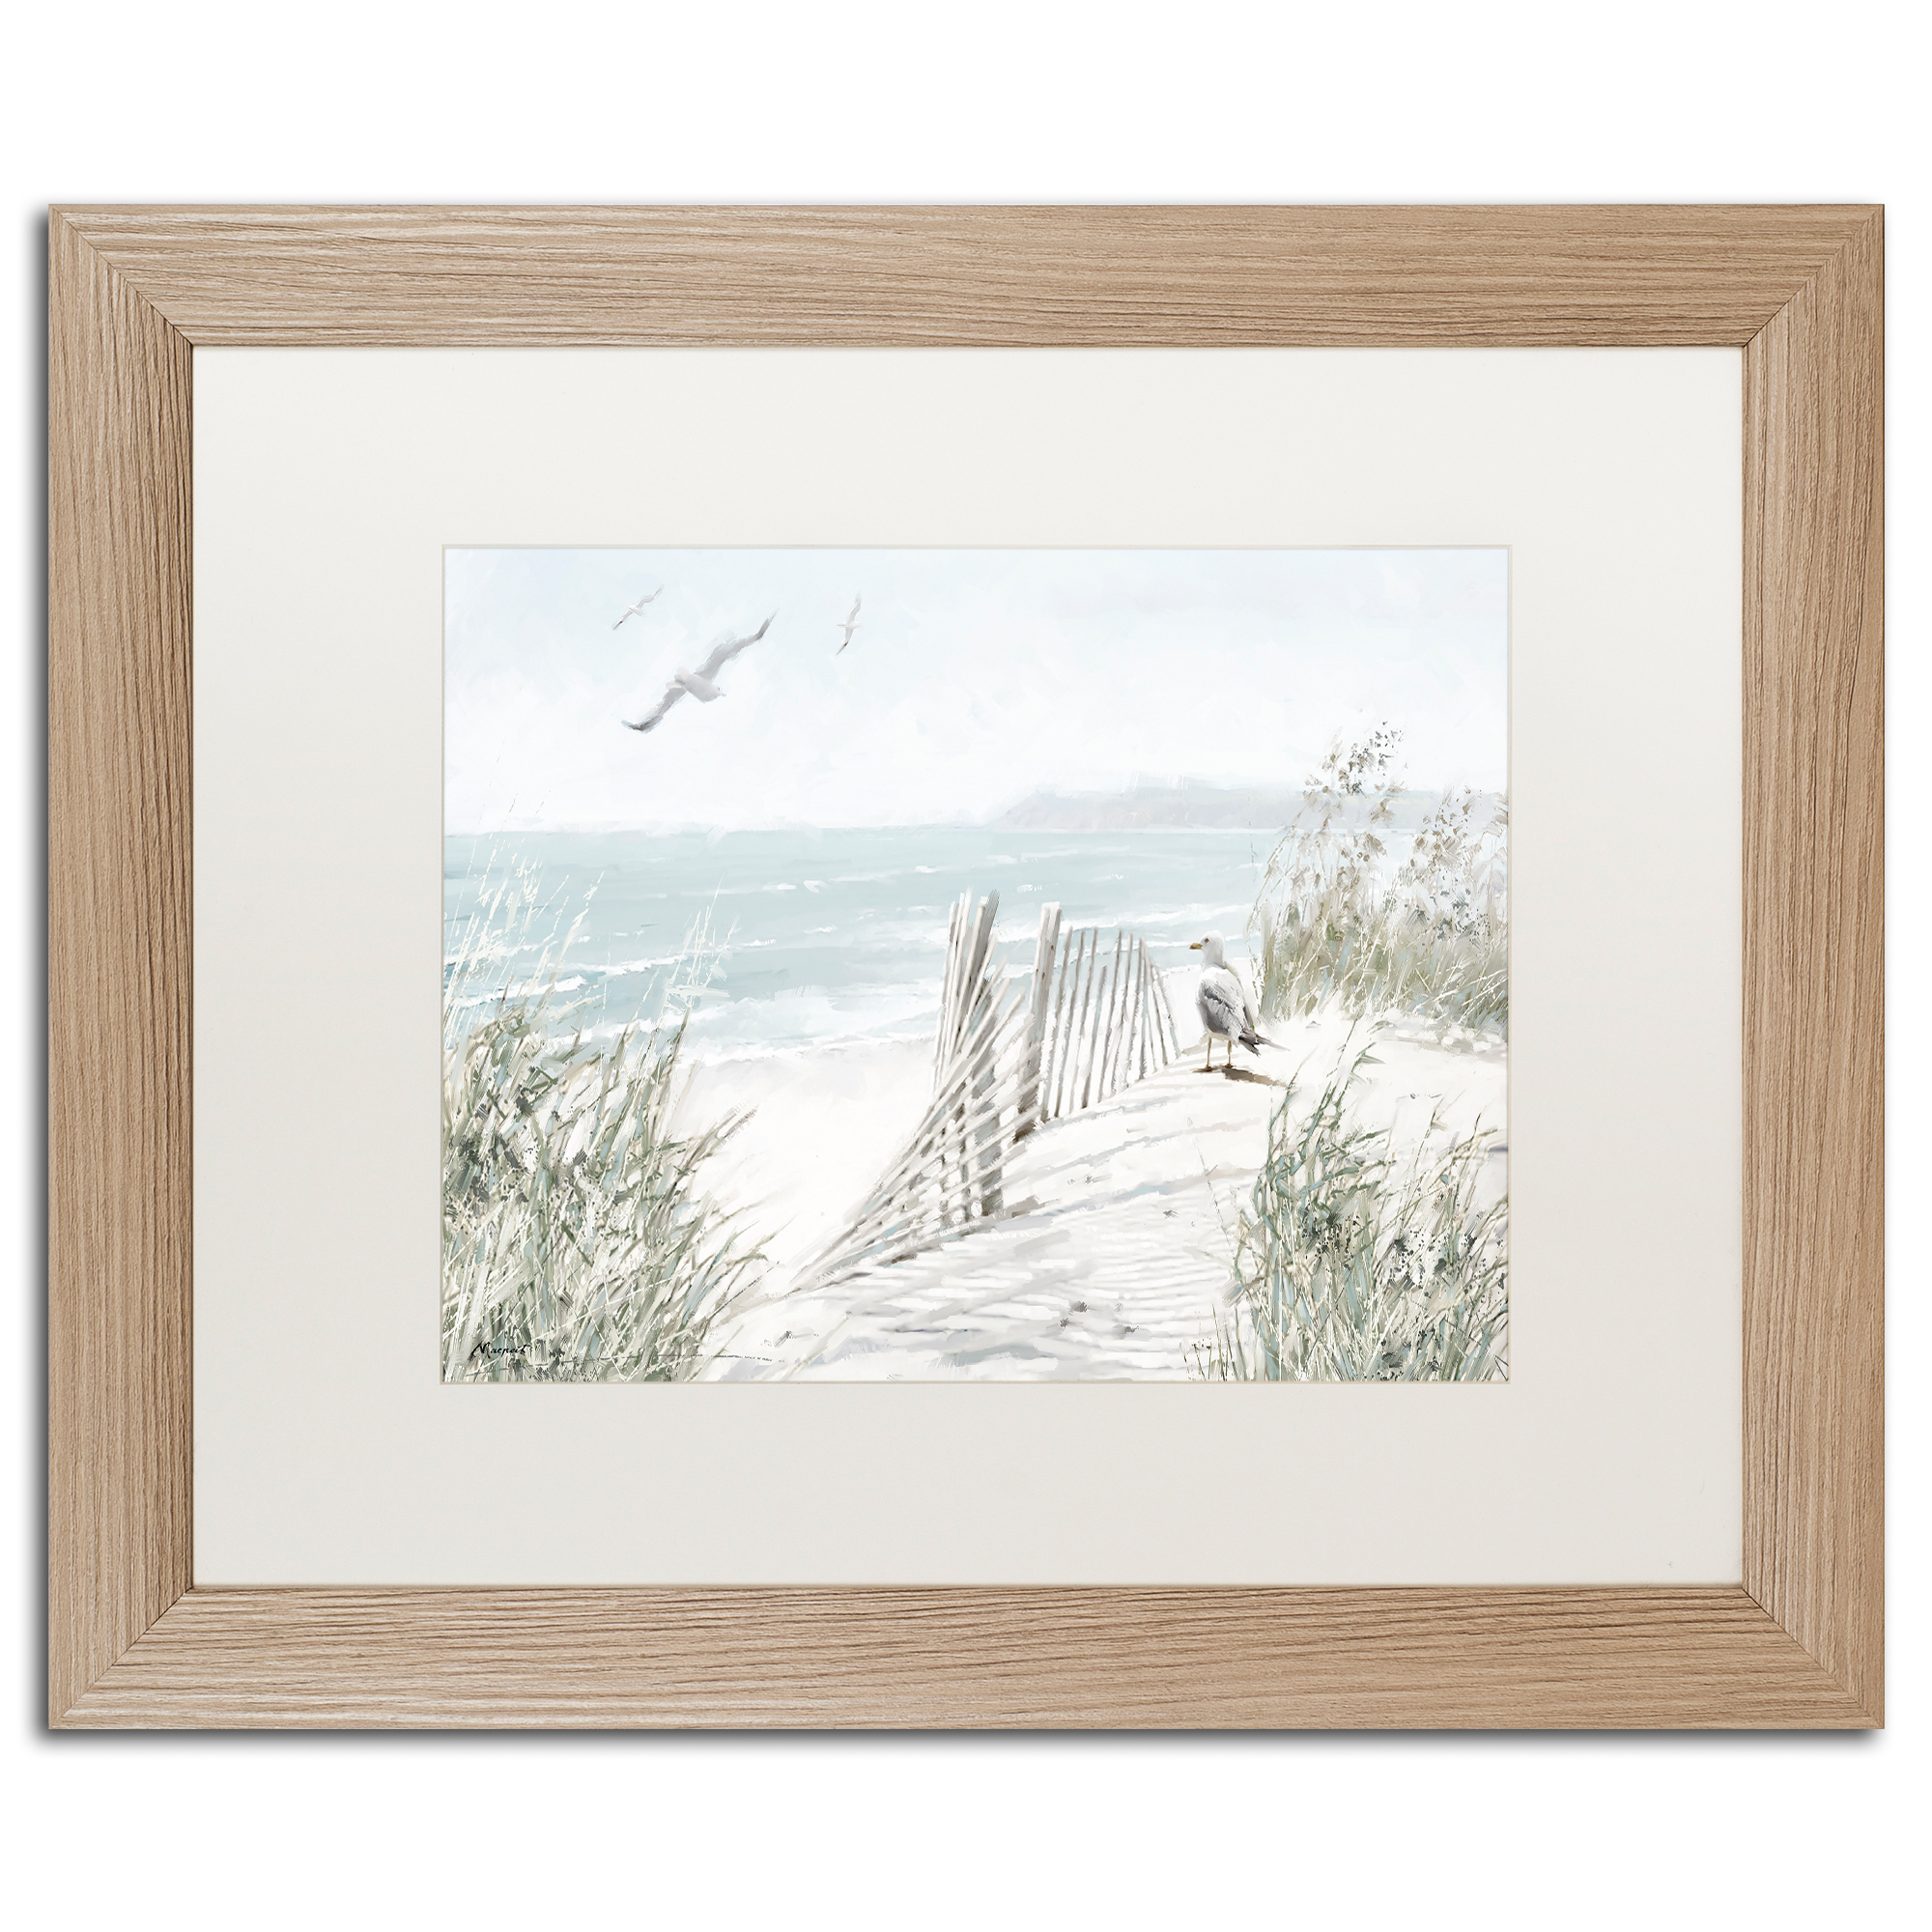 Trademark Fine Art 'Coastal Dunes' White Matte, Birch Framed Art by The Macneil Studio